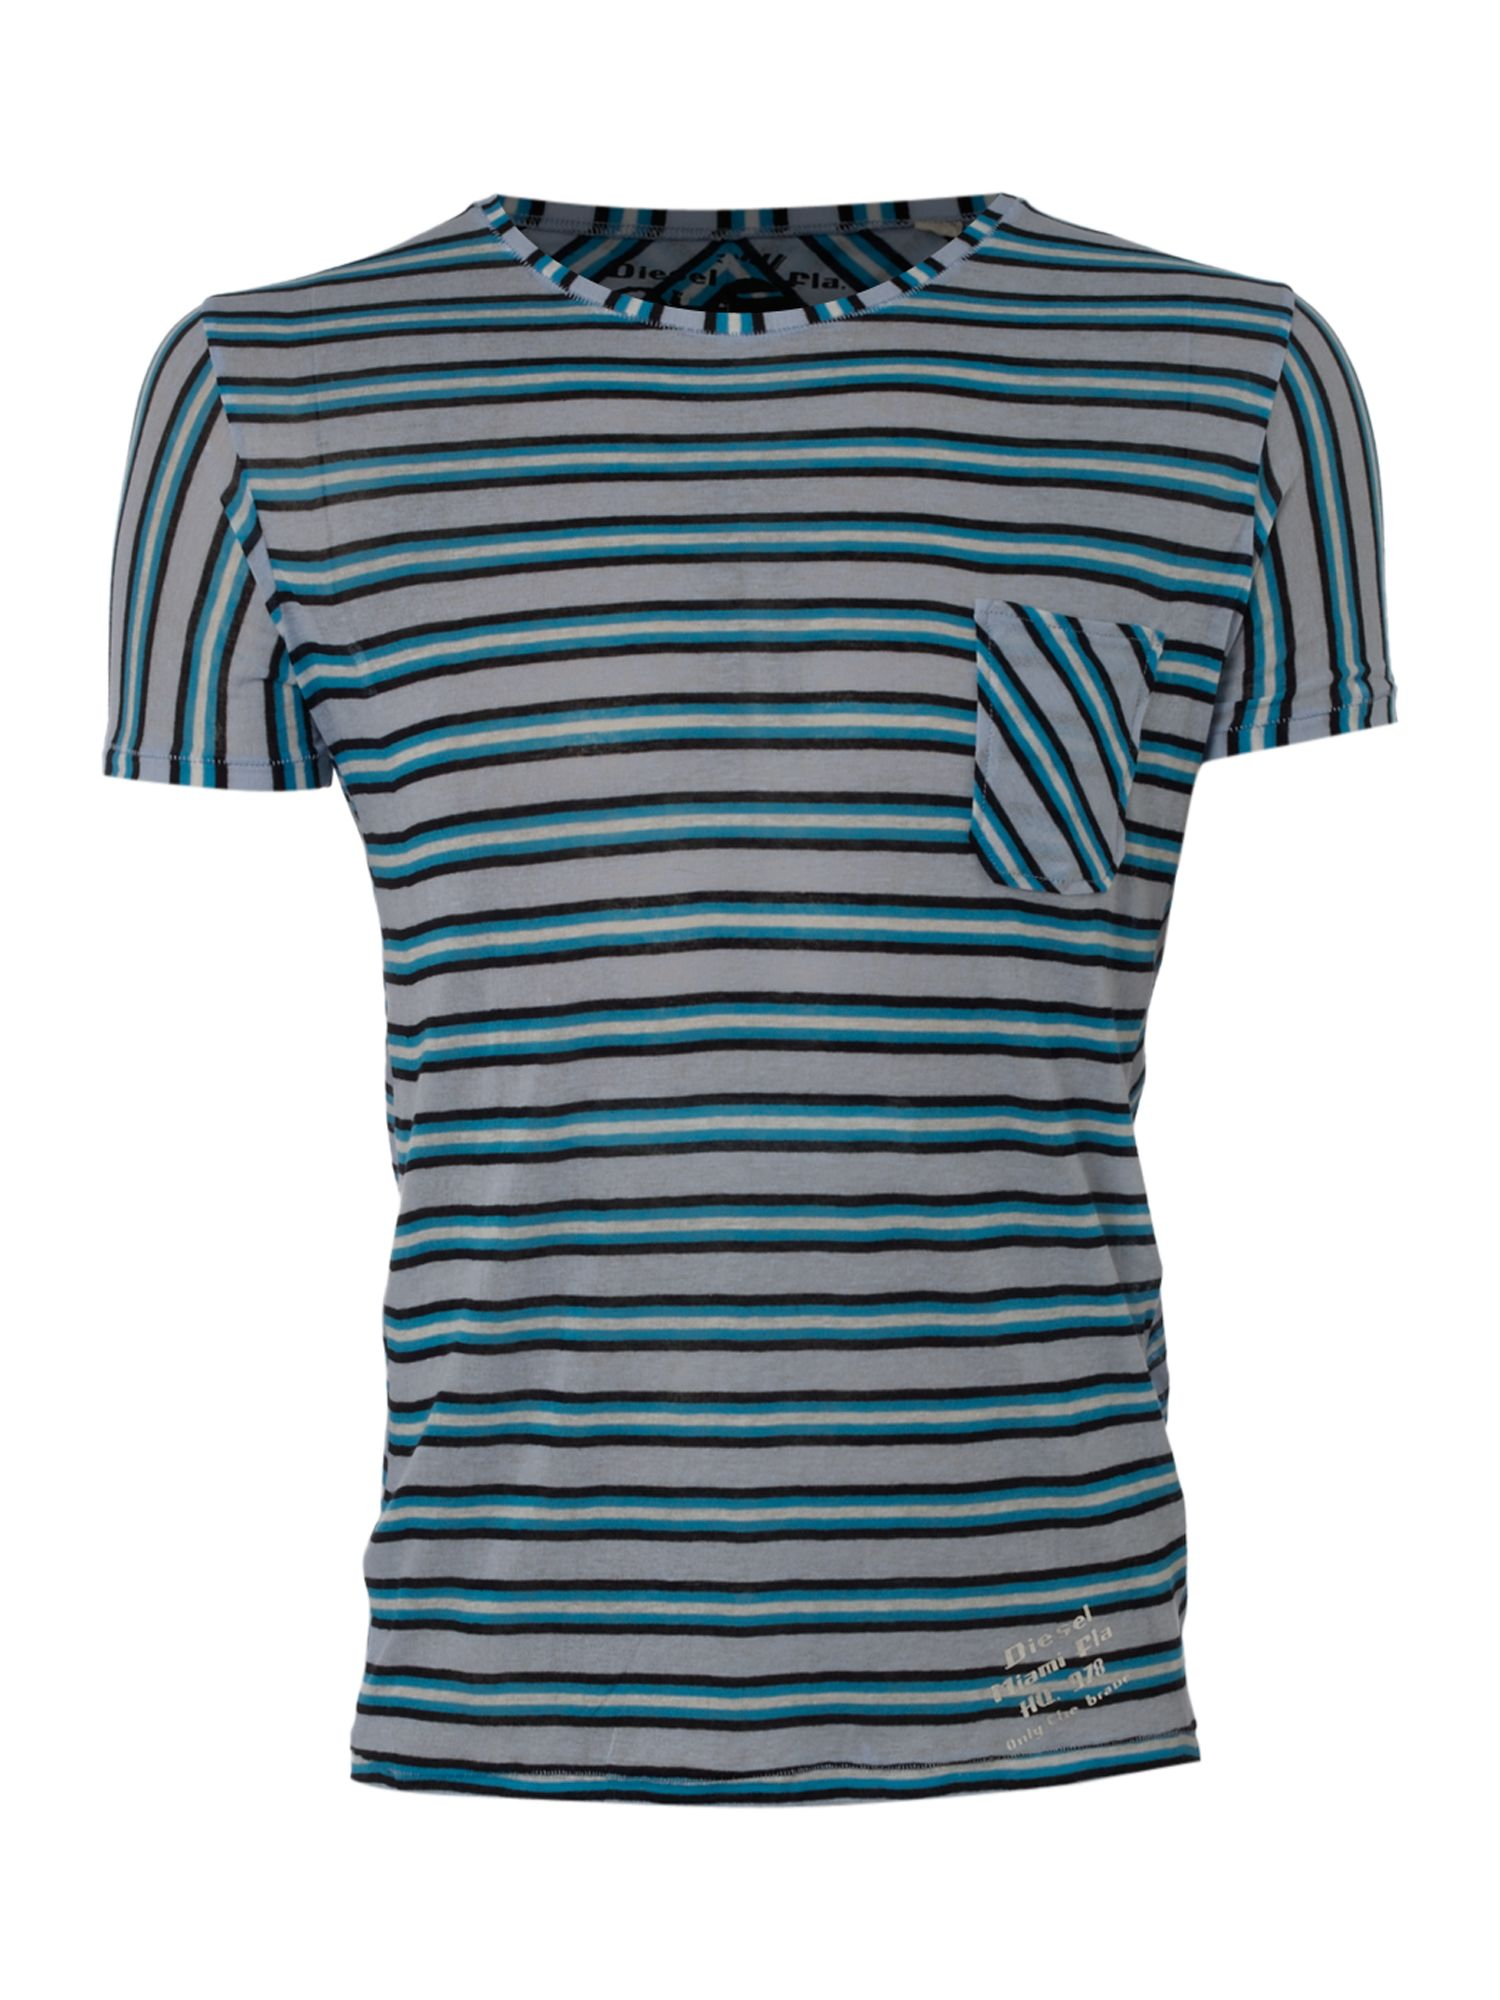 Diesel Mens Diesel Striped T-shirt, Sky Blue product image